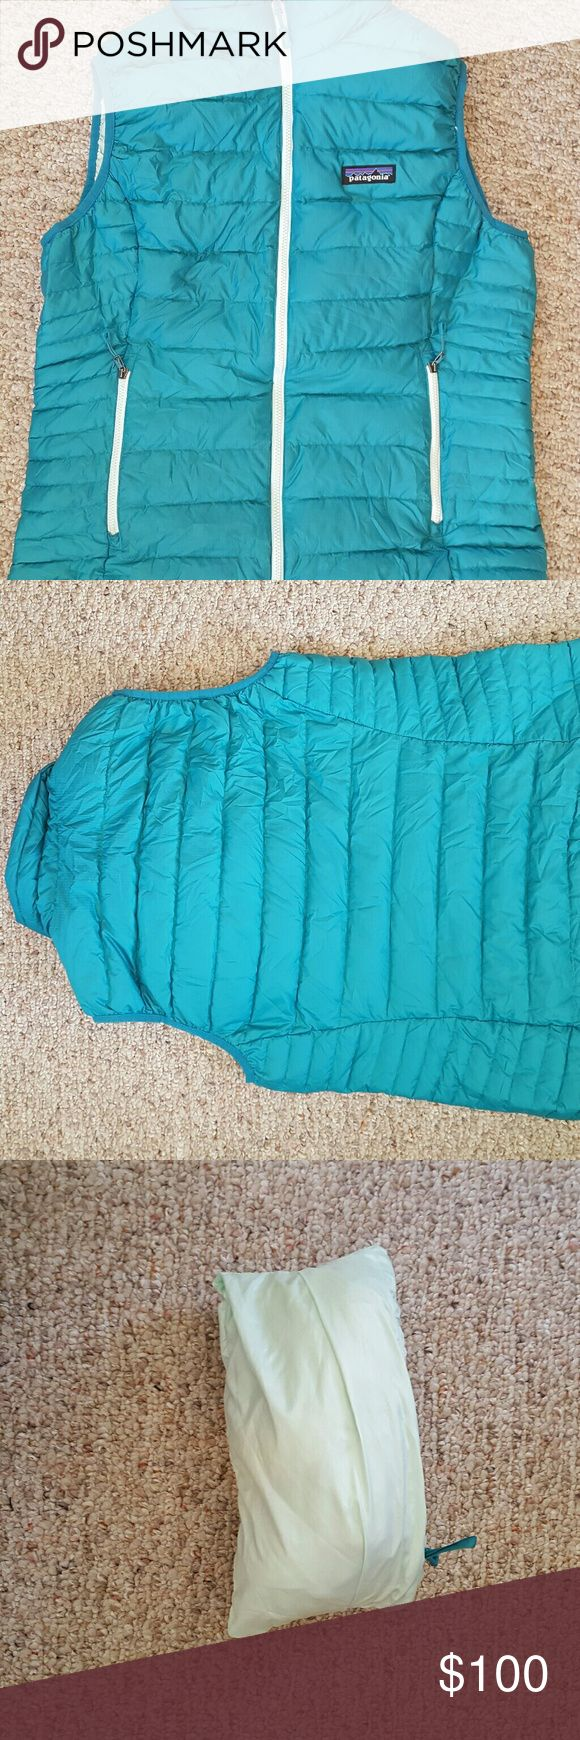 Patagonia Down Sweater Vest M Medium Excellent used Patagonia down sweater vest. Striking turquoise color. Super warm! A great thing about this vest is it has a built in pocket you can stuff it into - great for traveling or fitting in a purse! Nothing wrong with it just cleaning out my closet :) Patagonia Jackets & Coats Vests